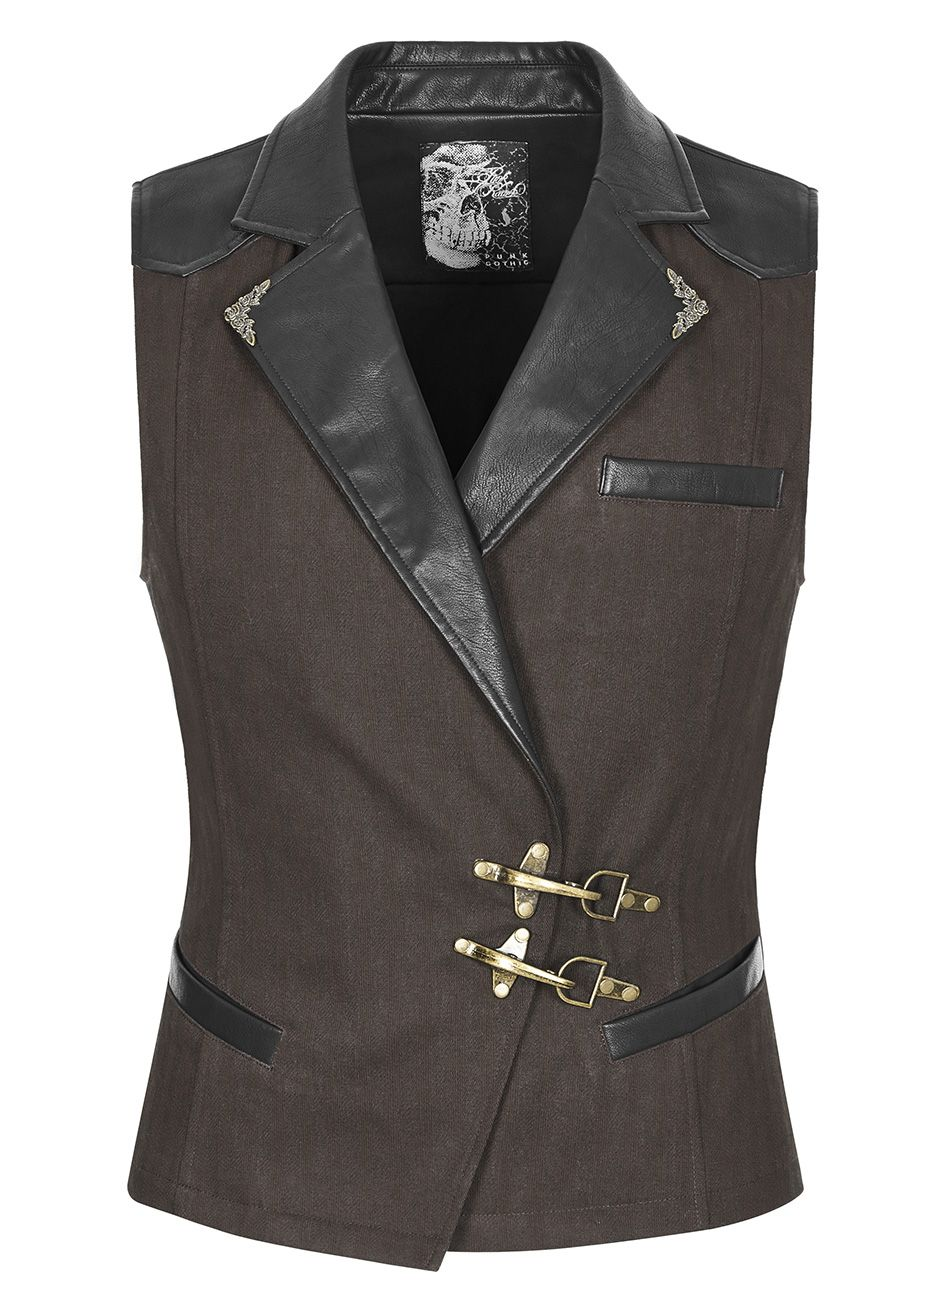 Pin by mahboob atabak on مردانه in 2020 Men's waistcoat